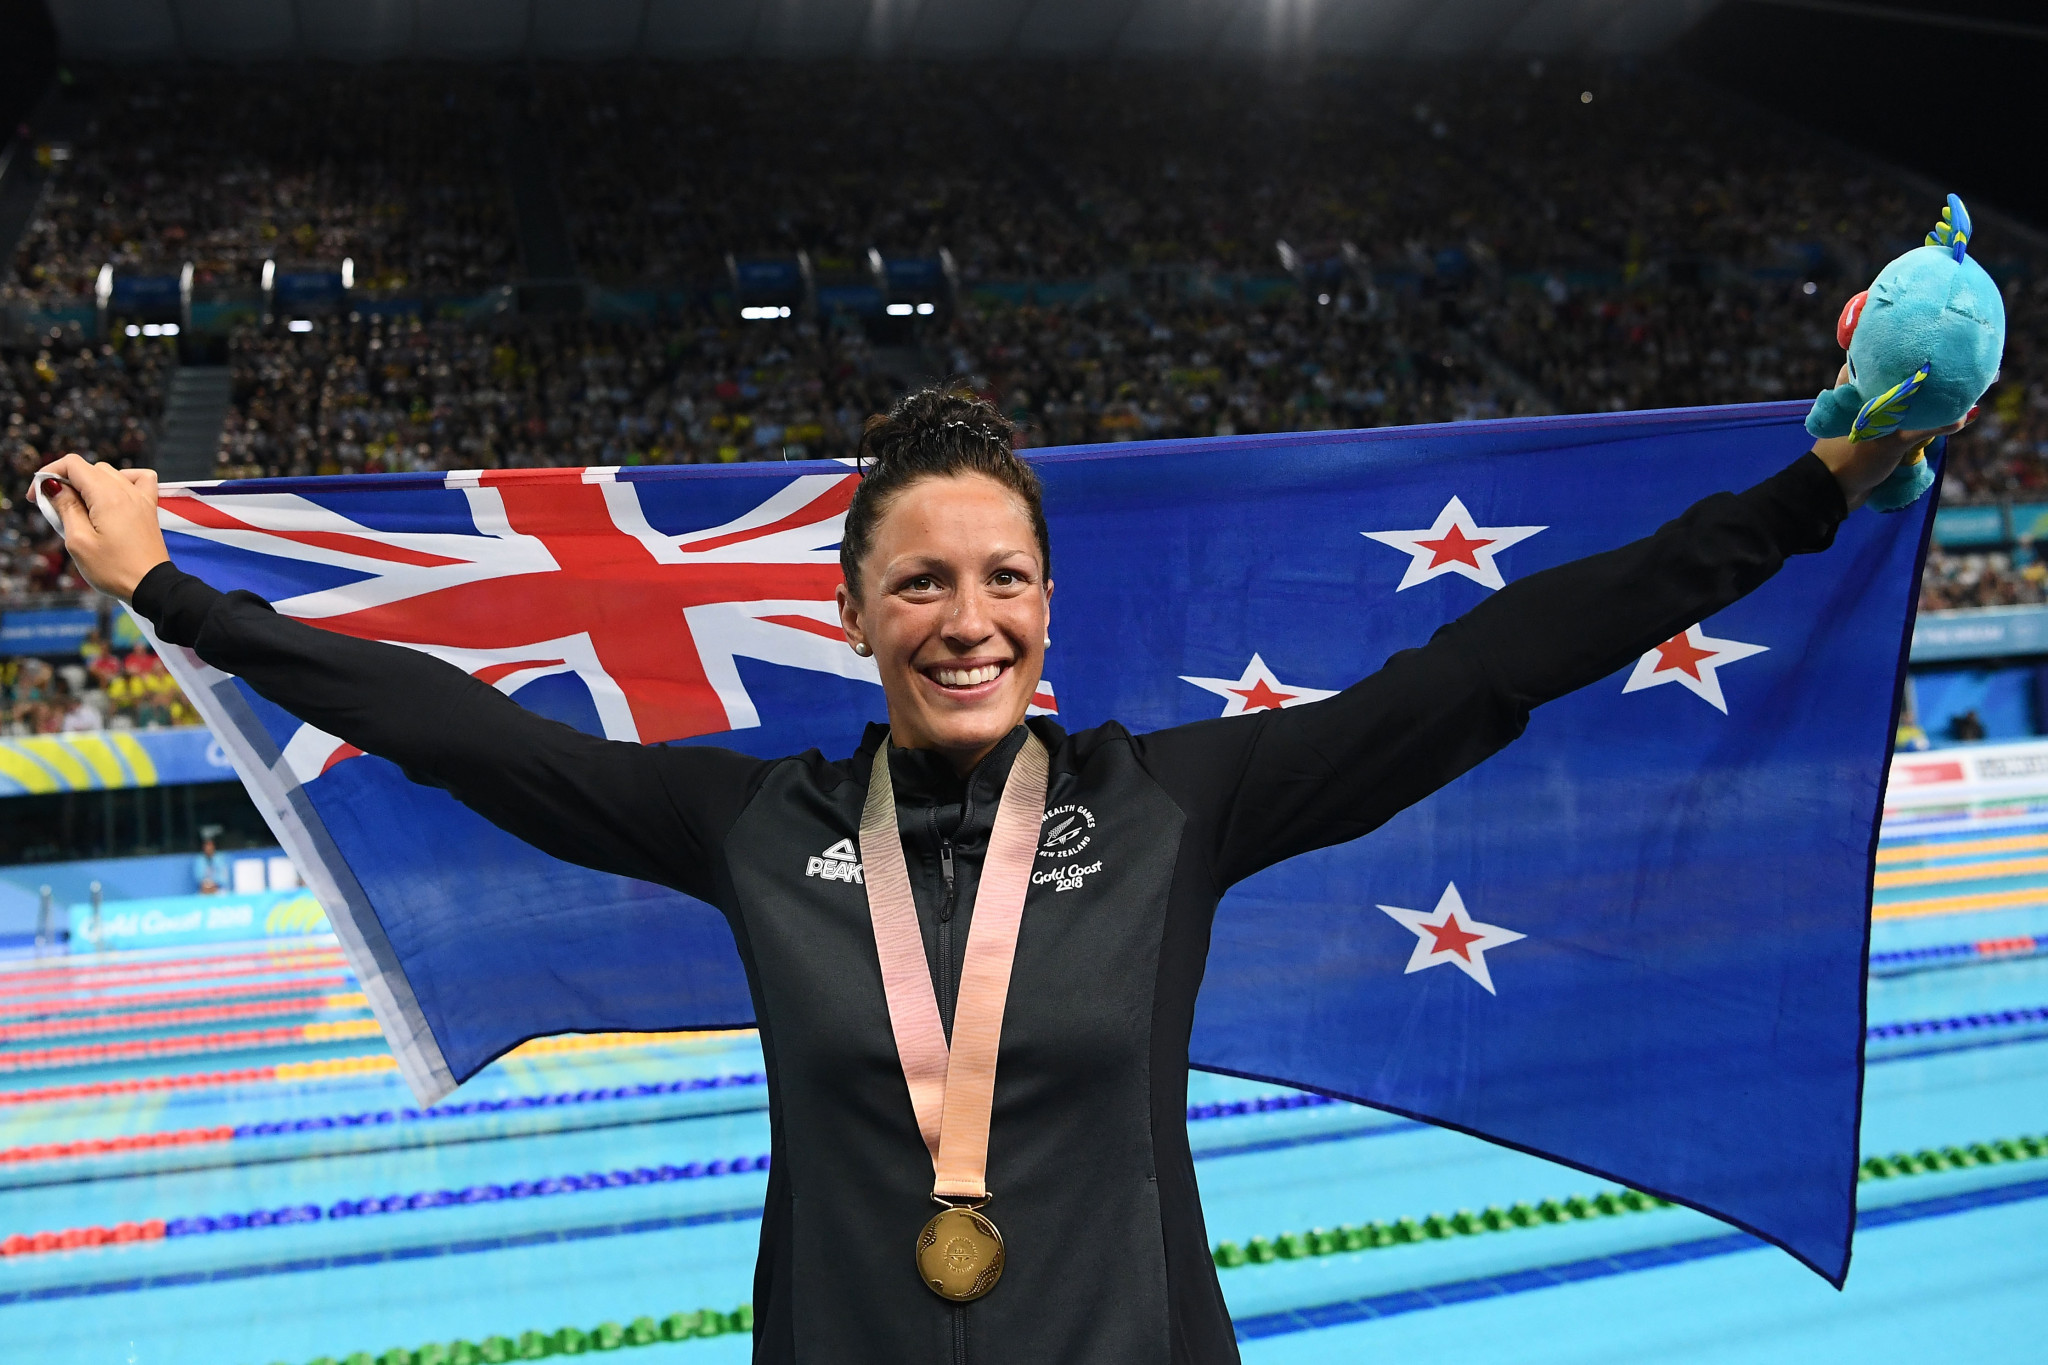 New Zealand dominate at Oceania Swimming Championships